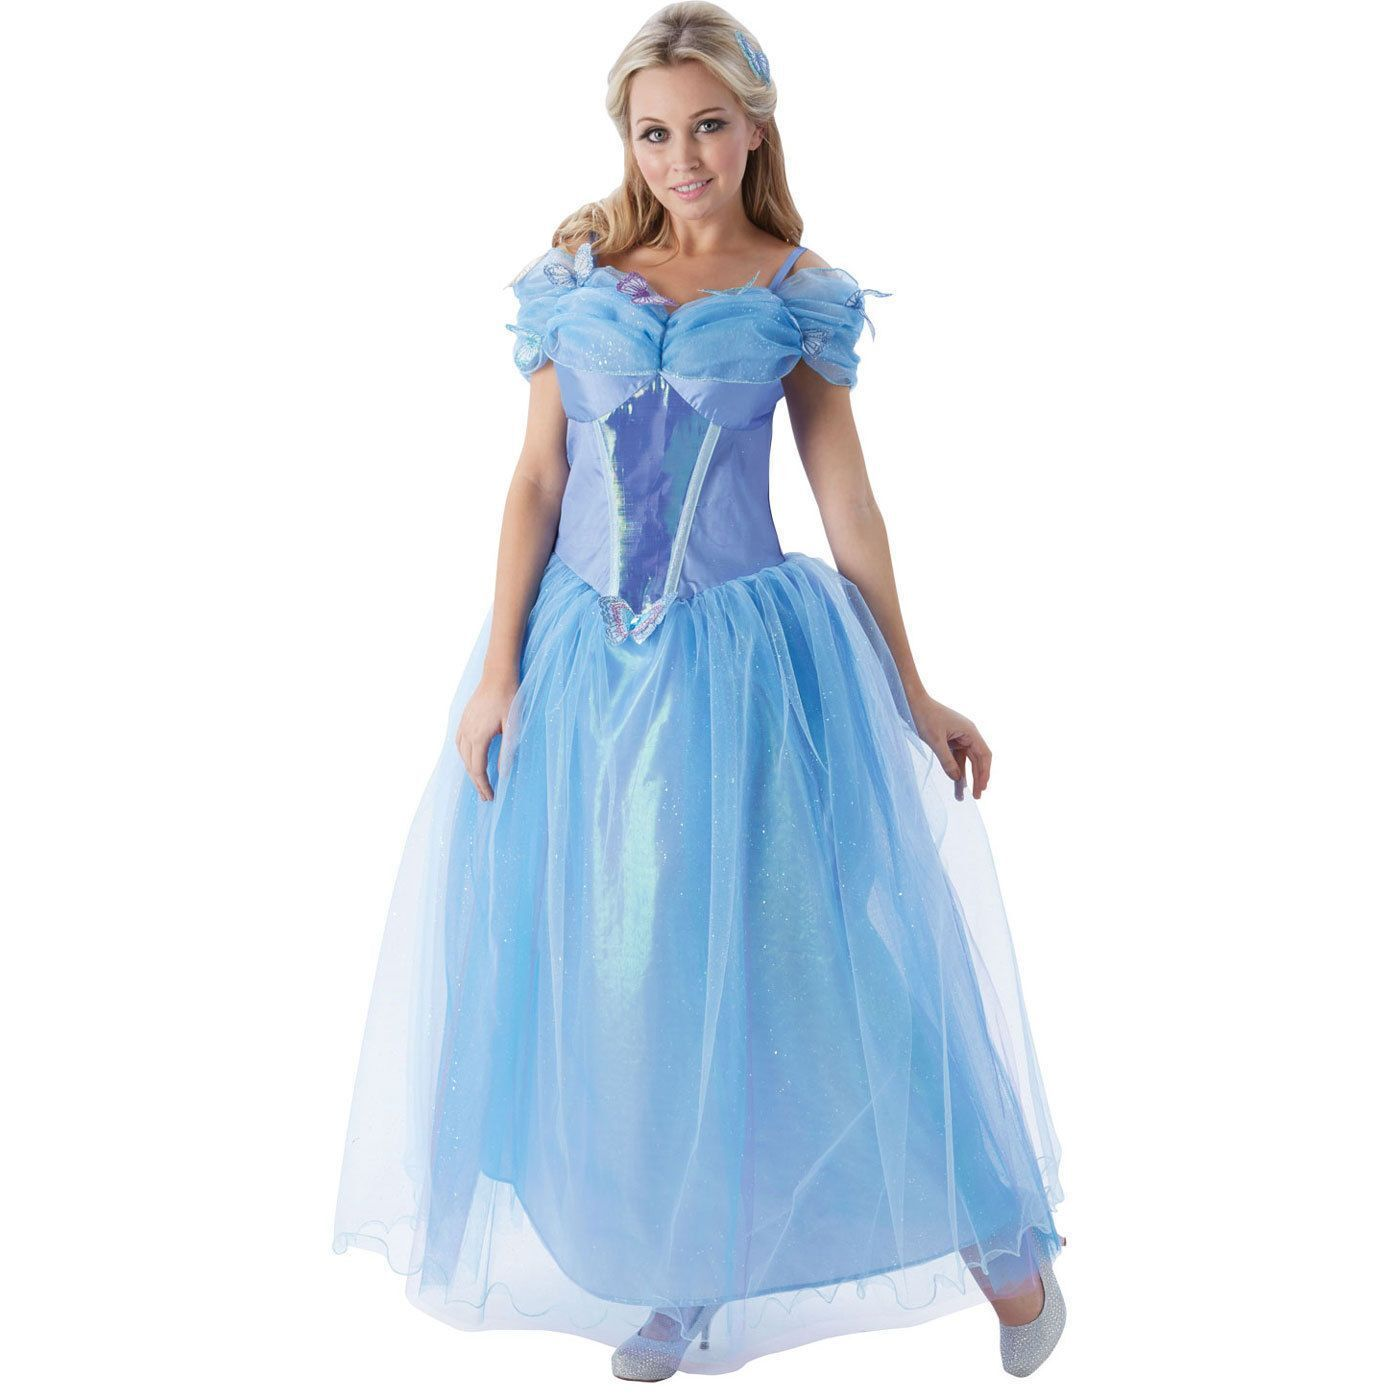 Cinderella Live Action Deluxe Costume - Buy Online Only